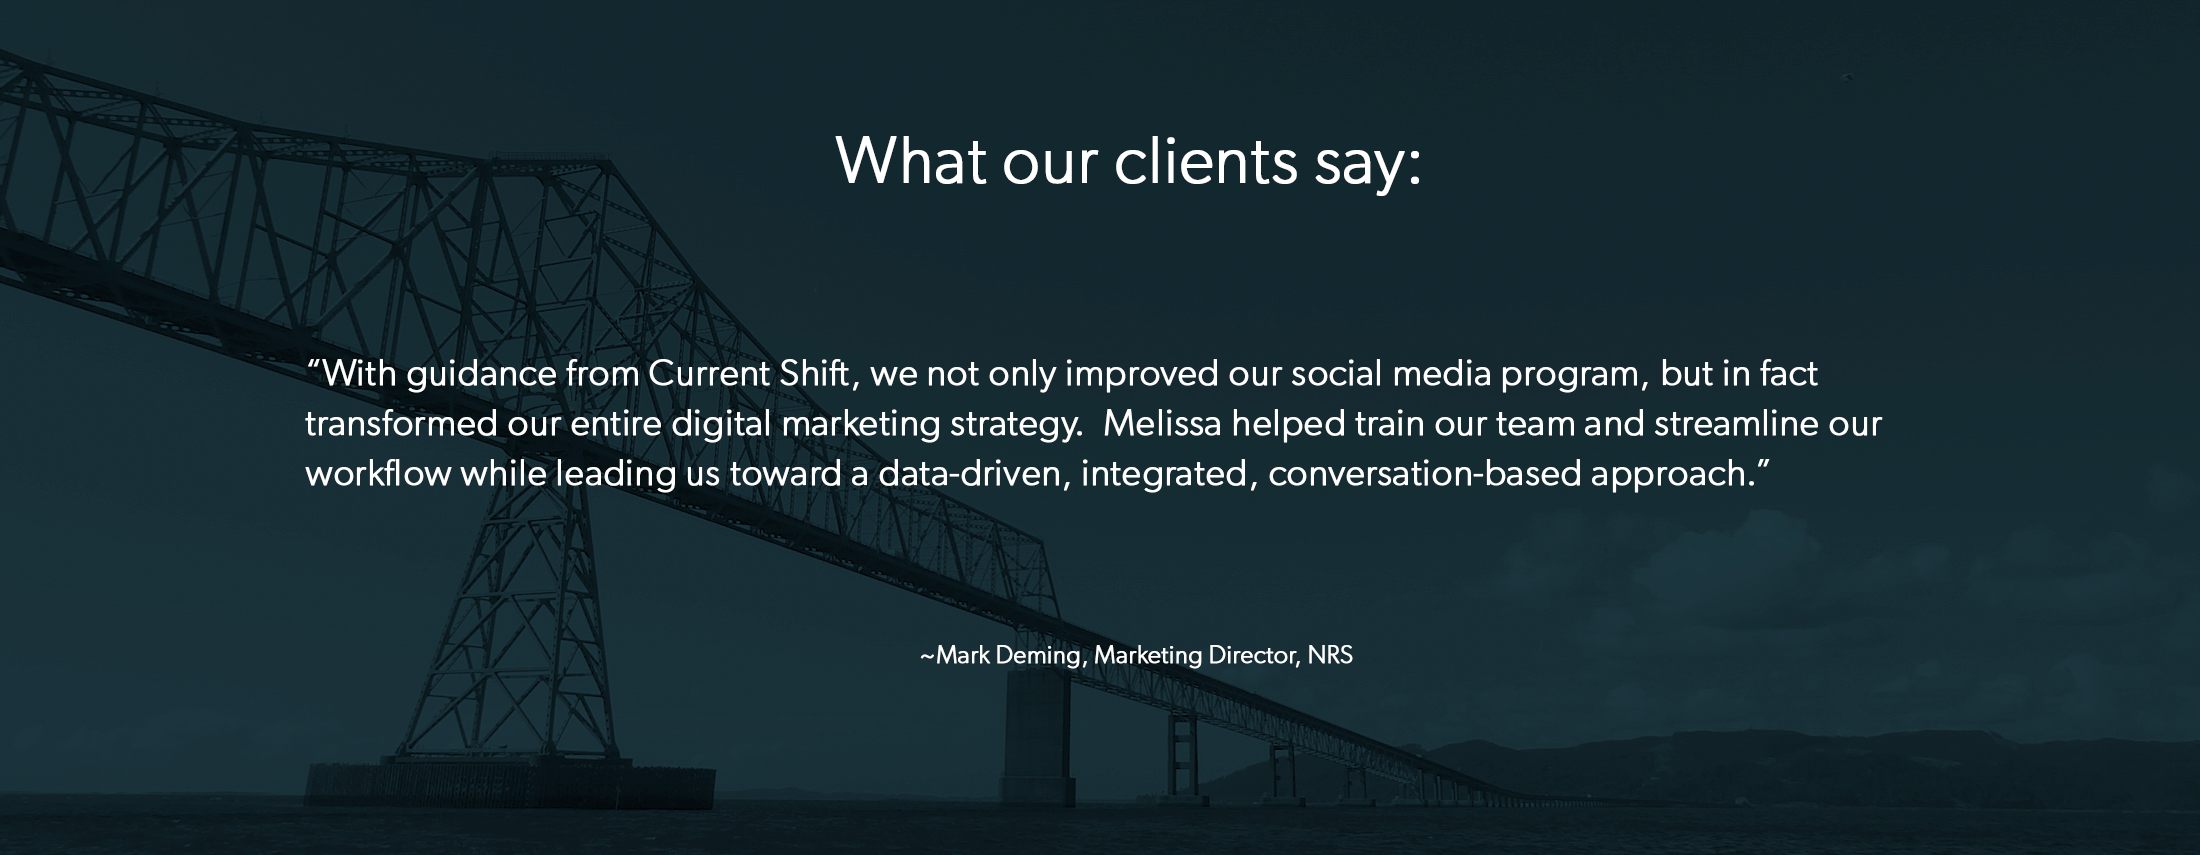 what_our_clients_say_nrs